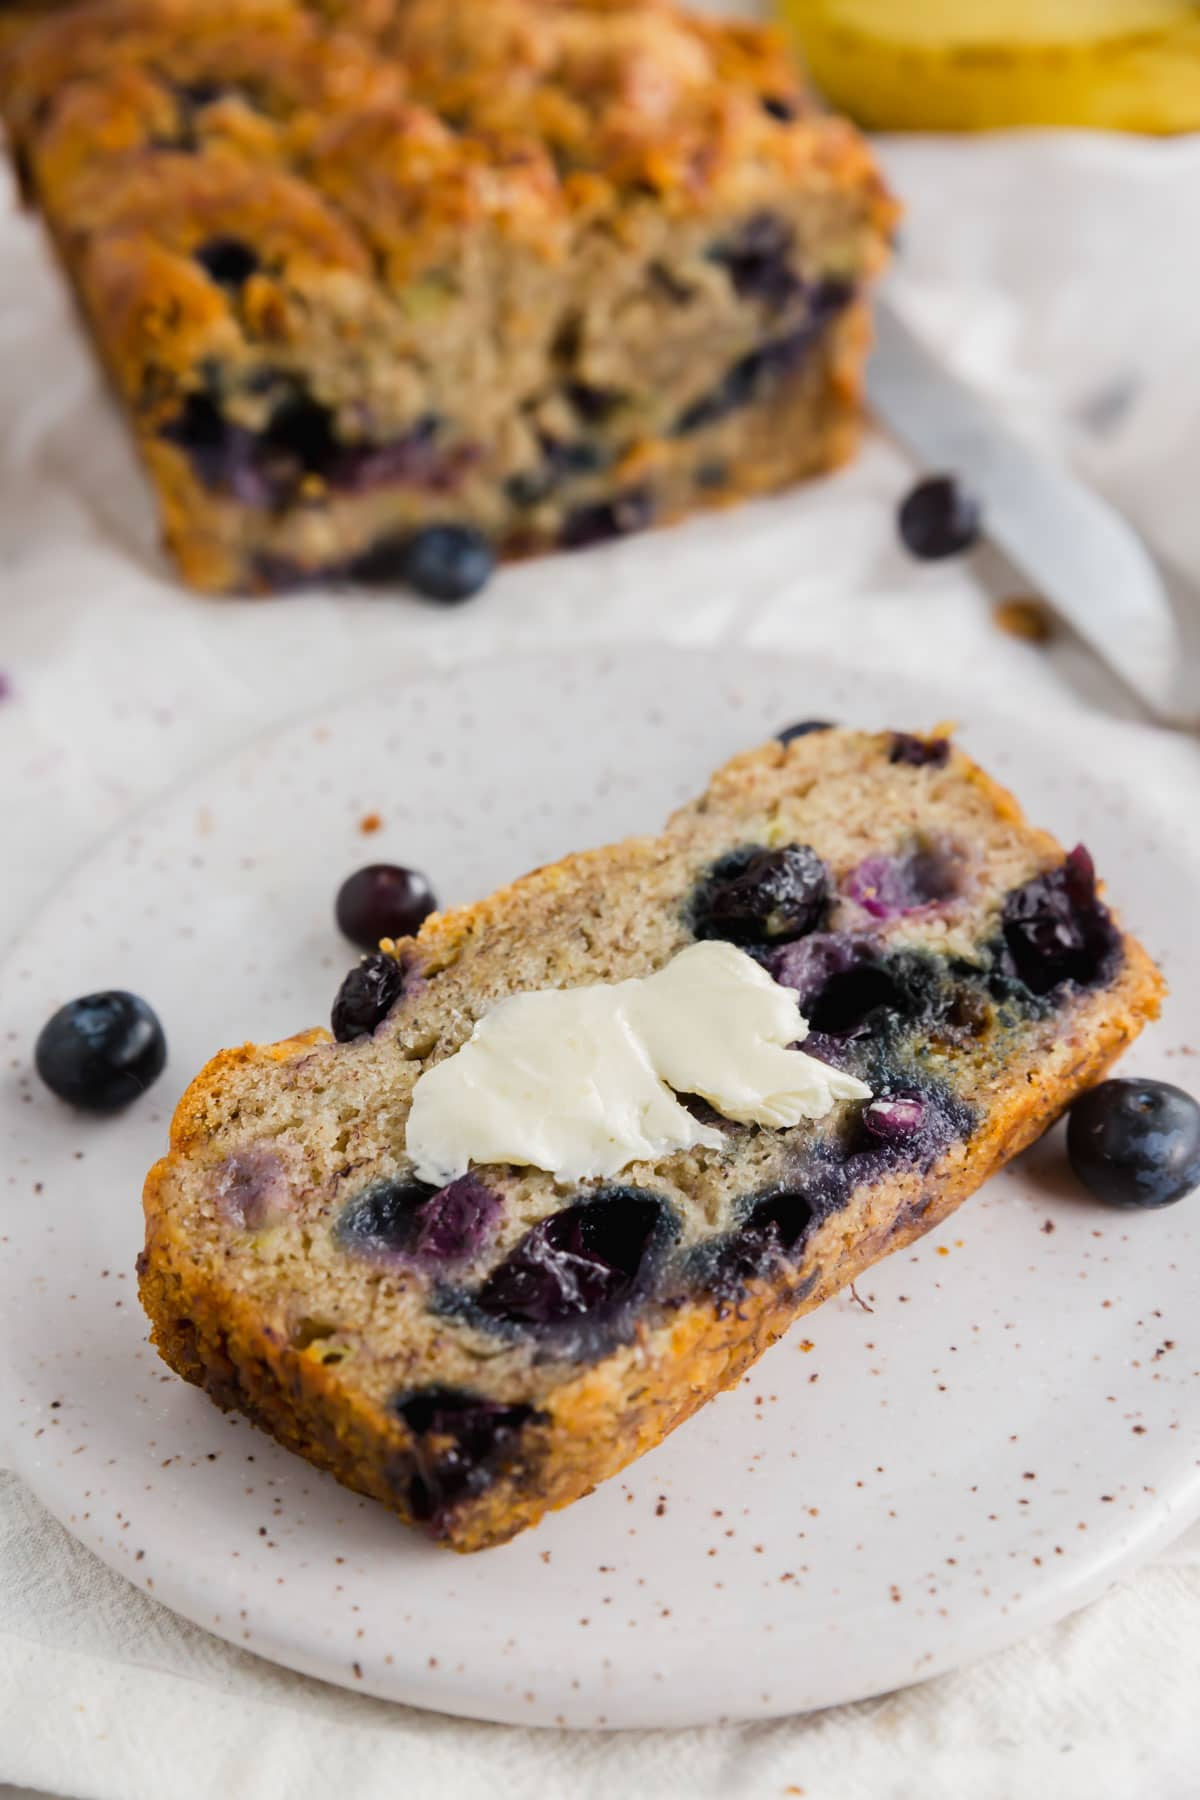 A photo of a slice of gluten-free vegan blueberry banana bread with vegan butter on top with a loaf of bread in the background.